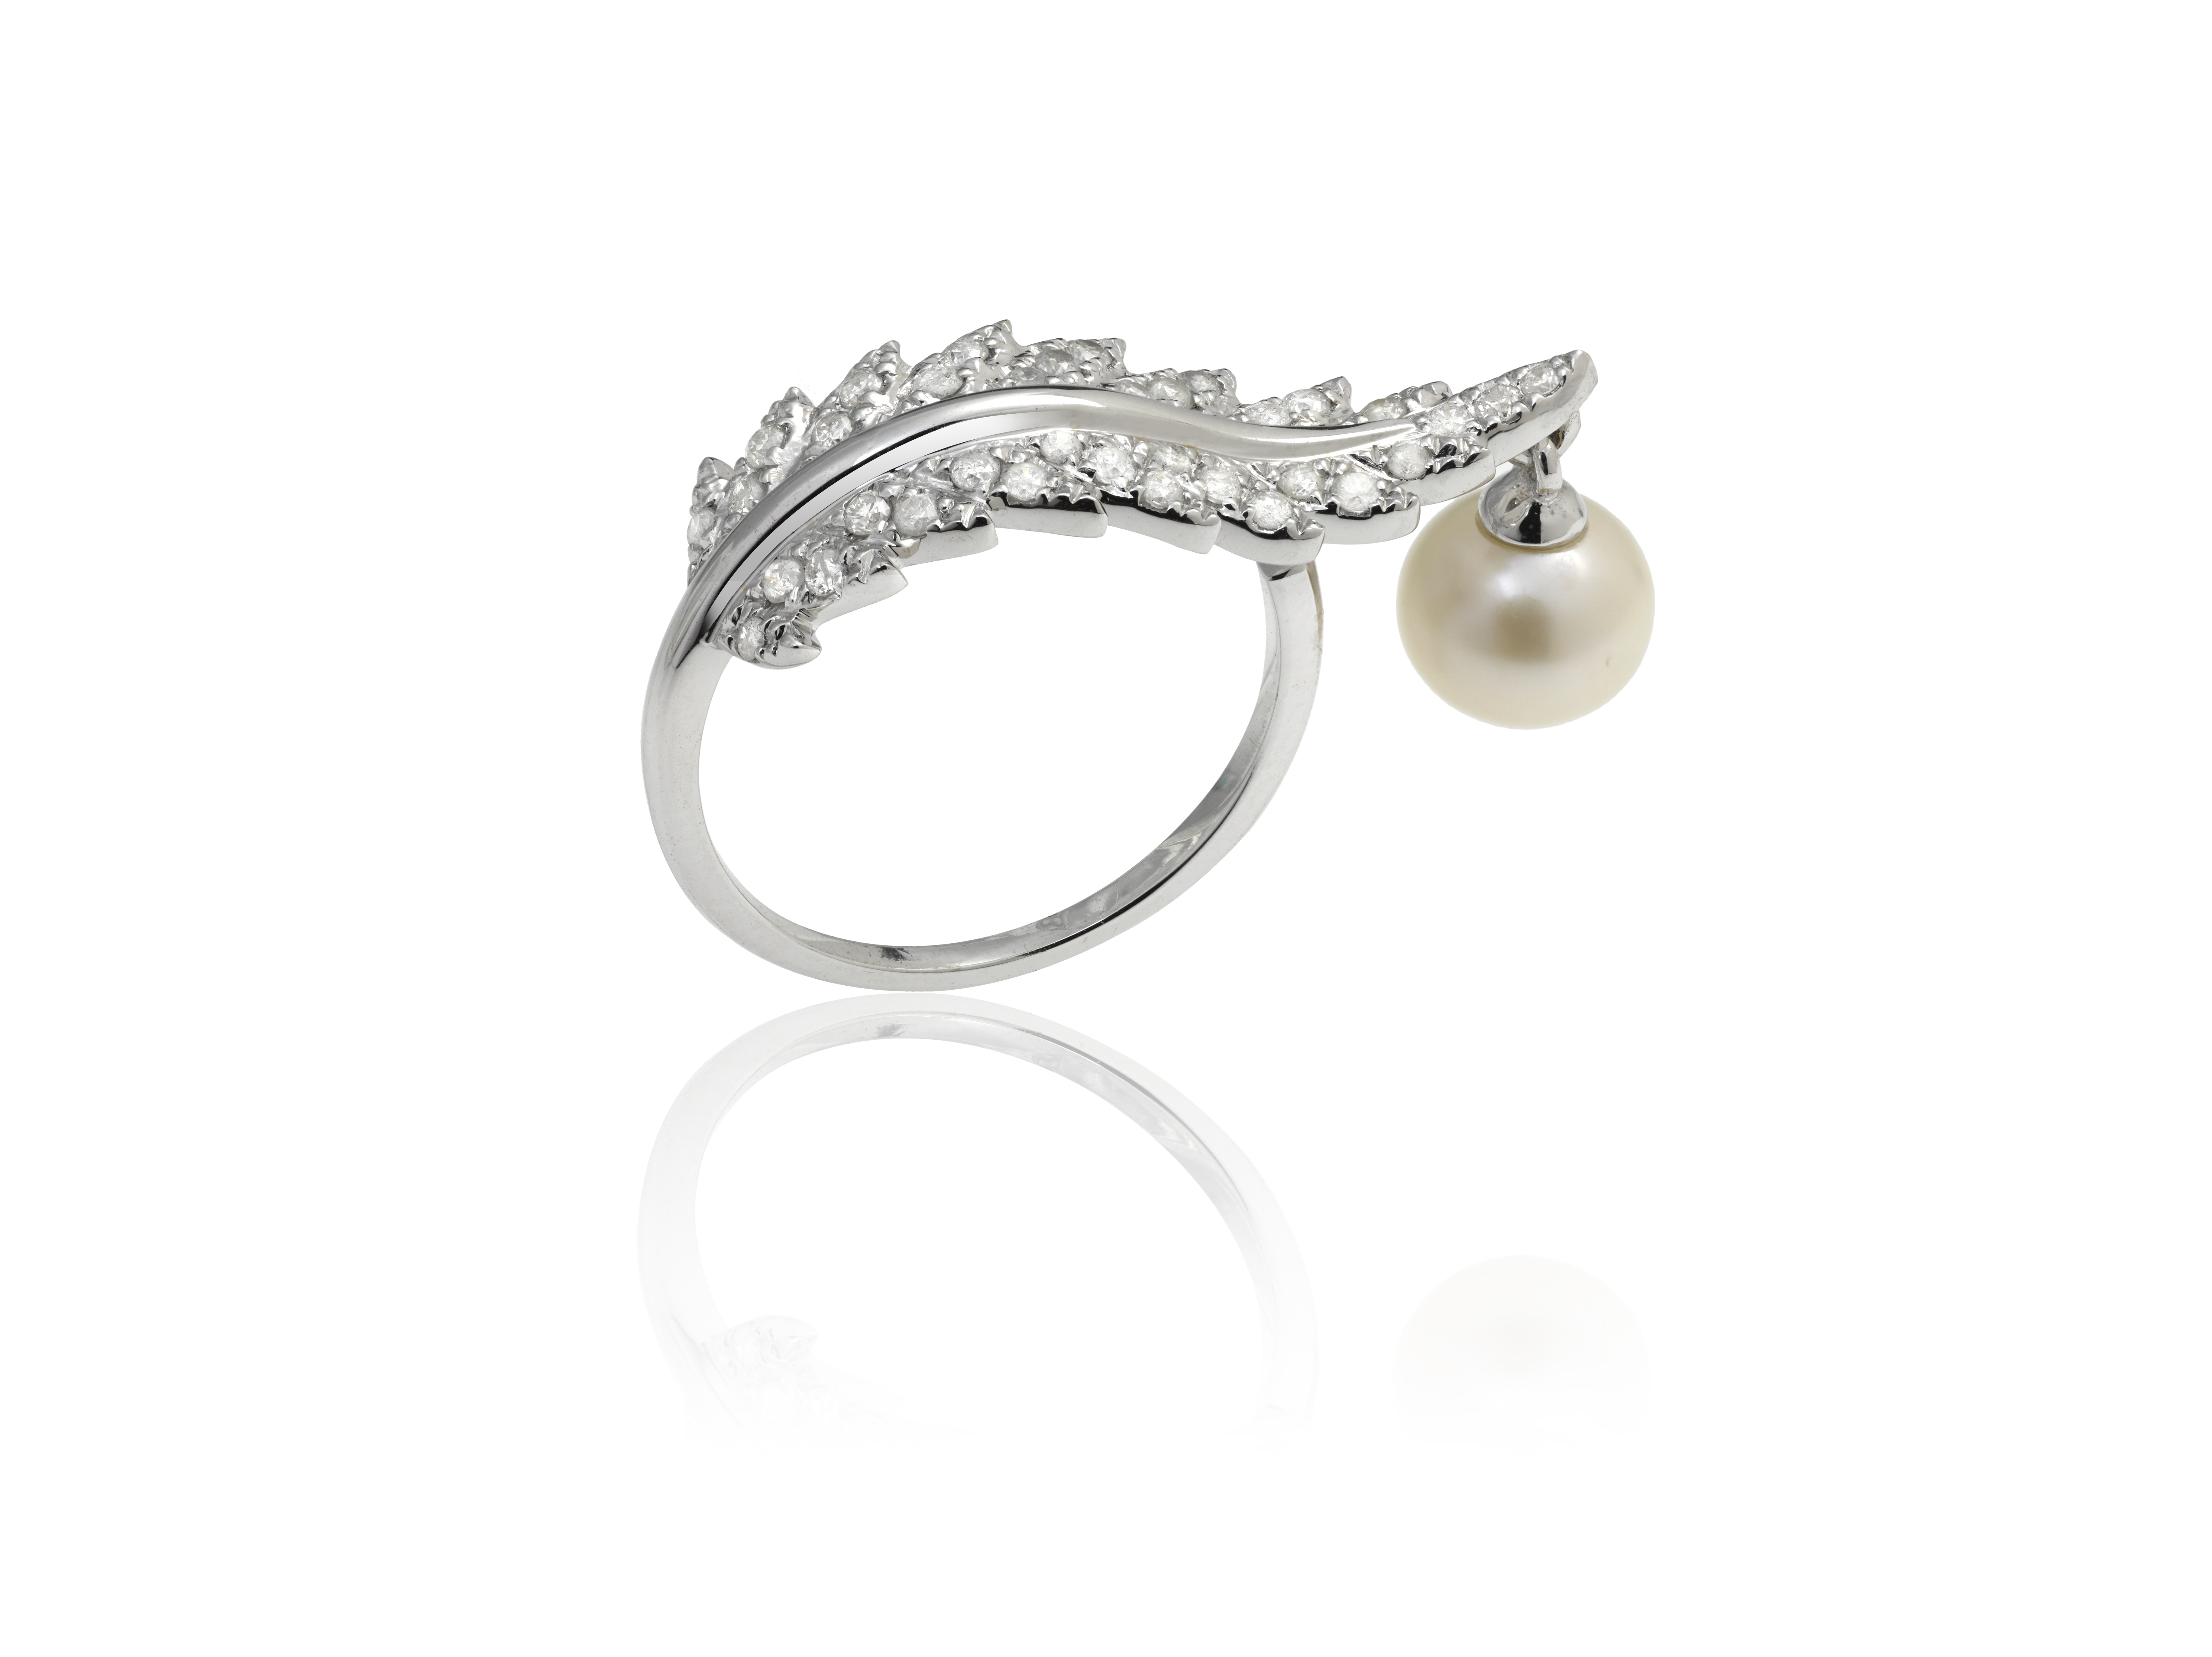 Elise Dray Plumette Ring mounted on white gold with pearl and diamonds